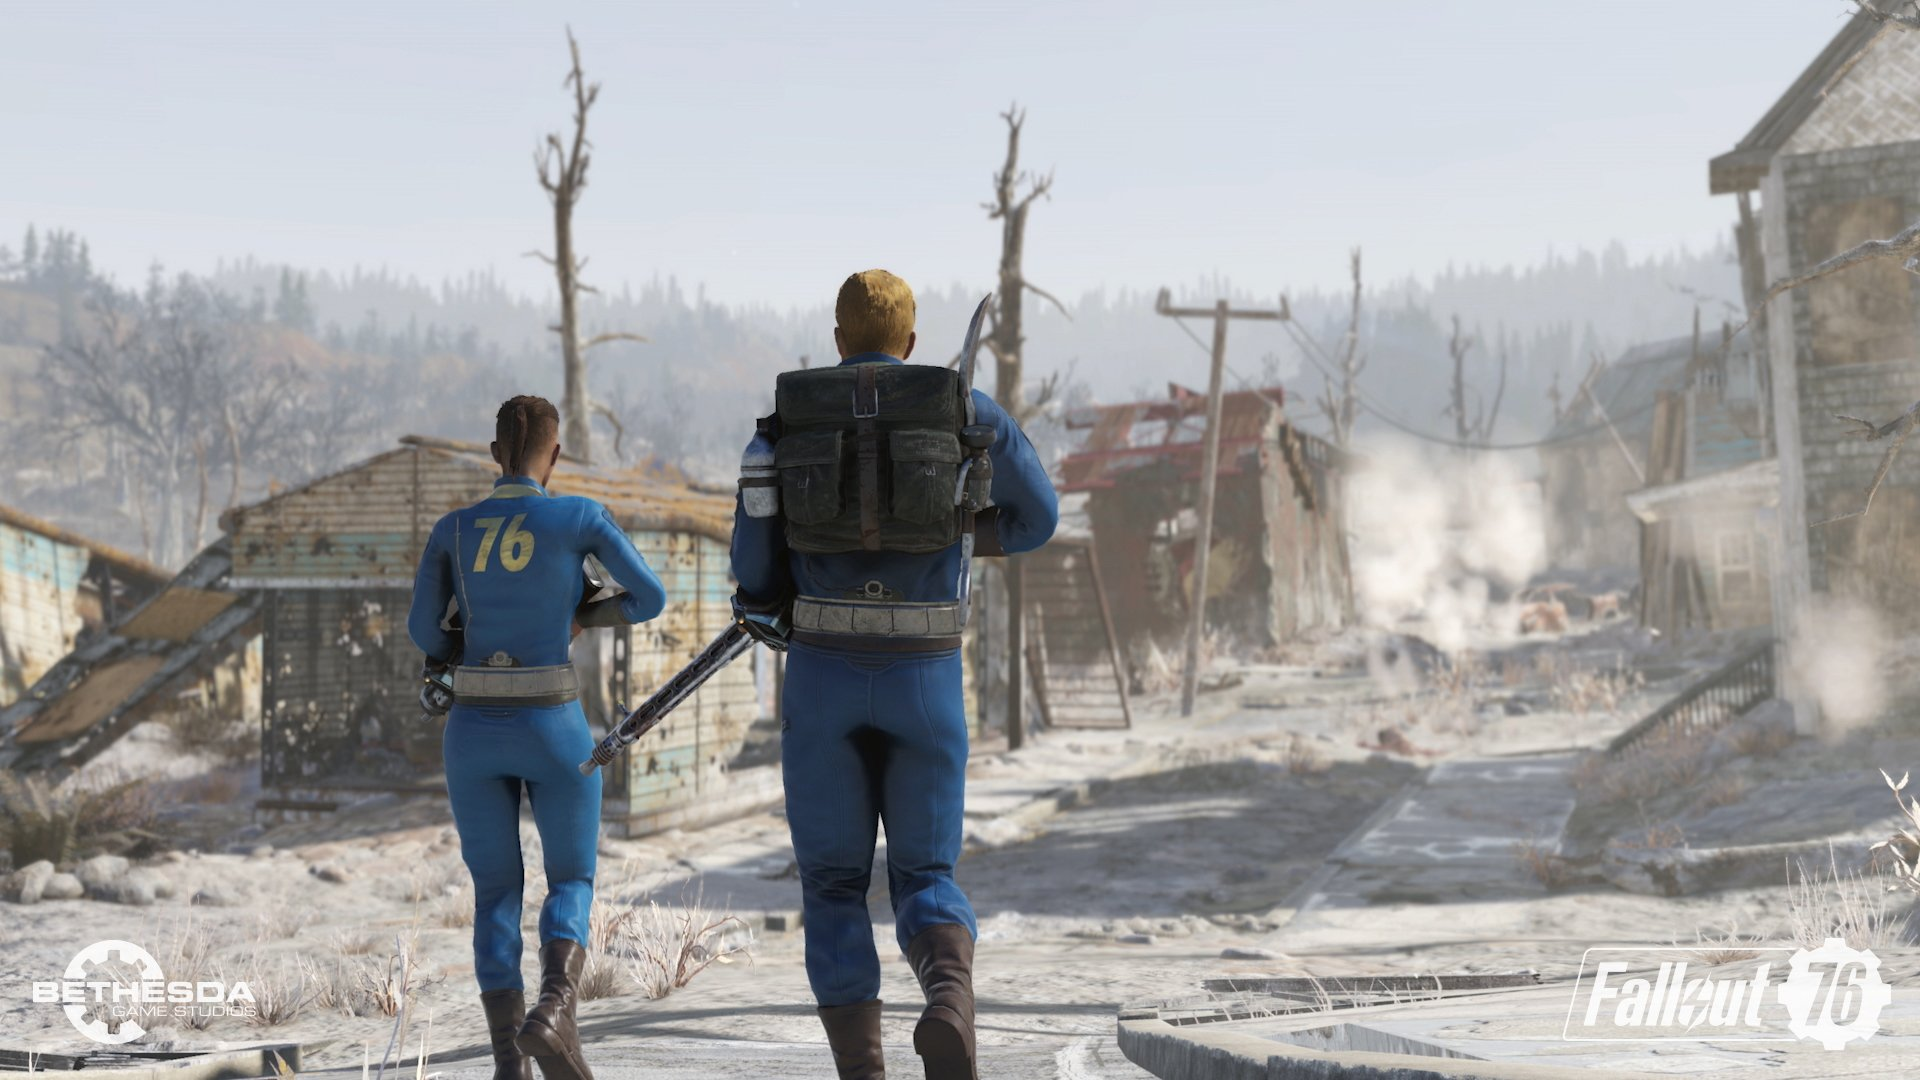 Fallout 76 is free on Steam for those who own the PC version, but you have to claim it quickly screenshot